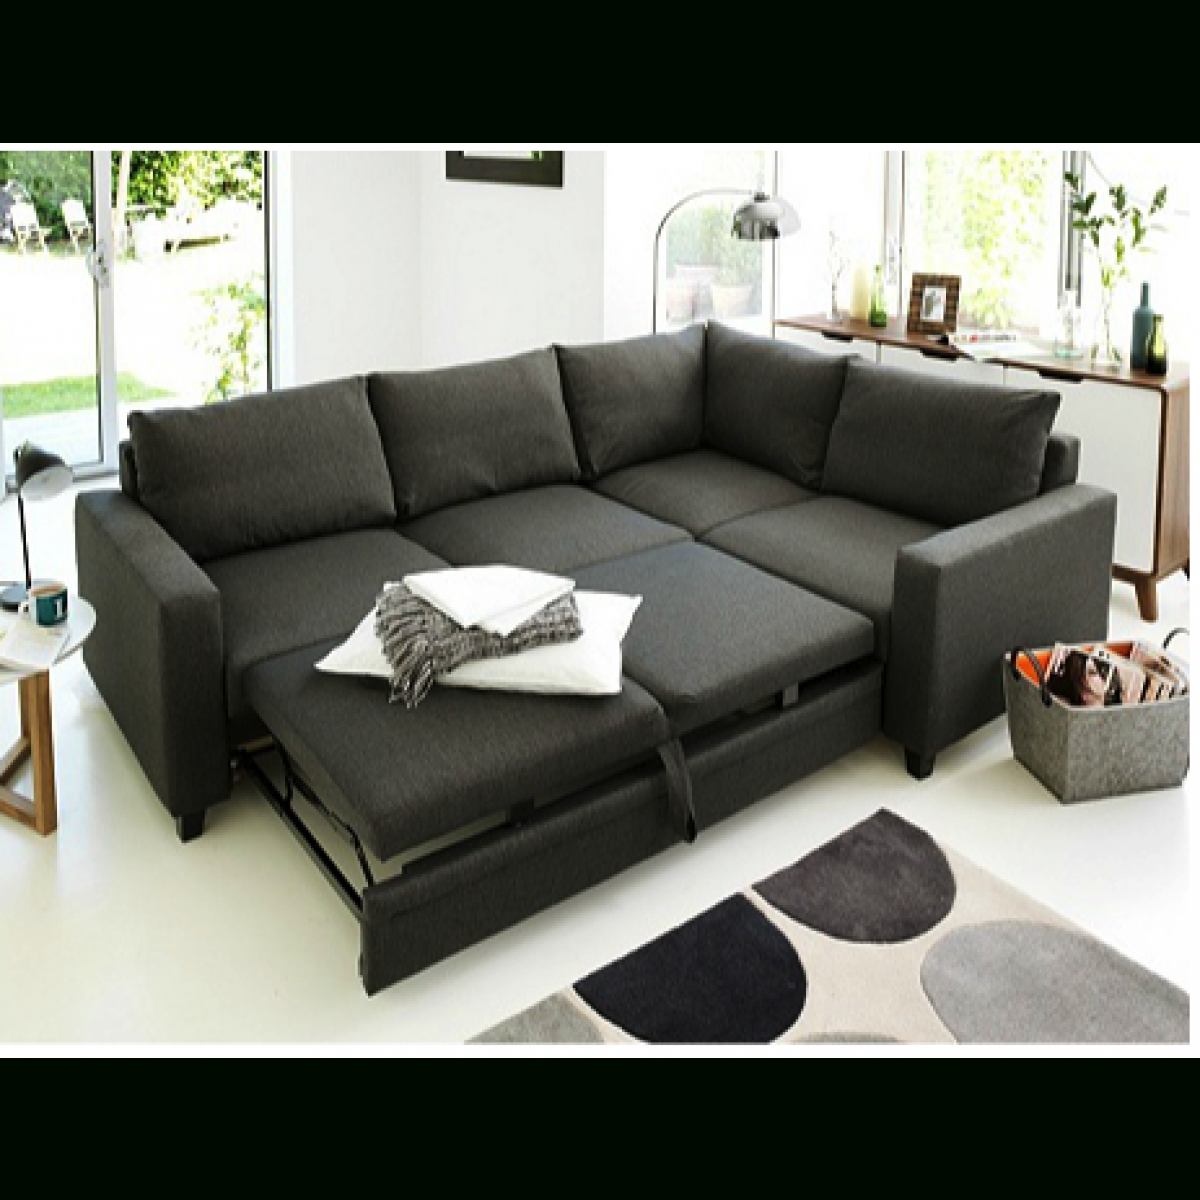 Hygena Seattle Right Hand Corner Sofa Bed - Charcoal. - Furnico regarding Cheap Corner Sofa Beds (Image 16 of 30)